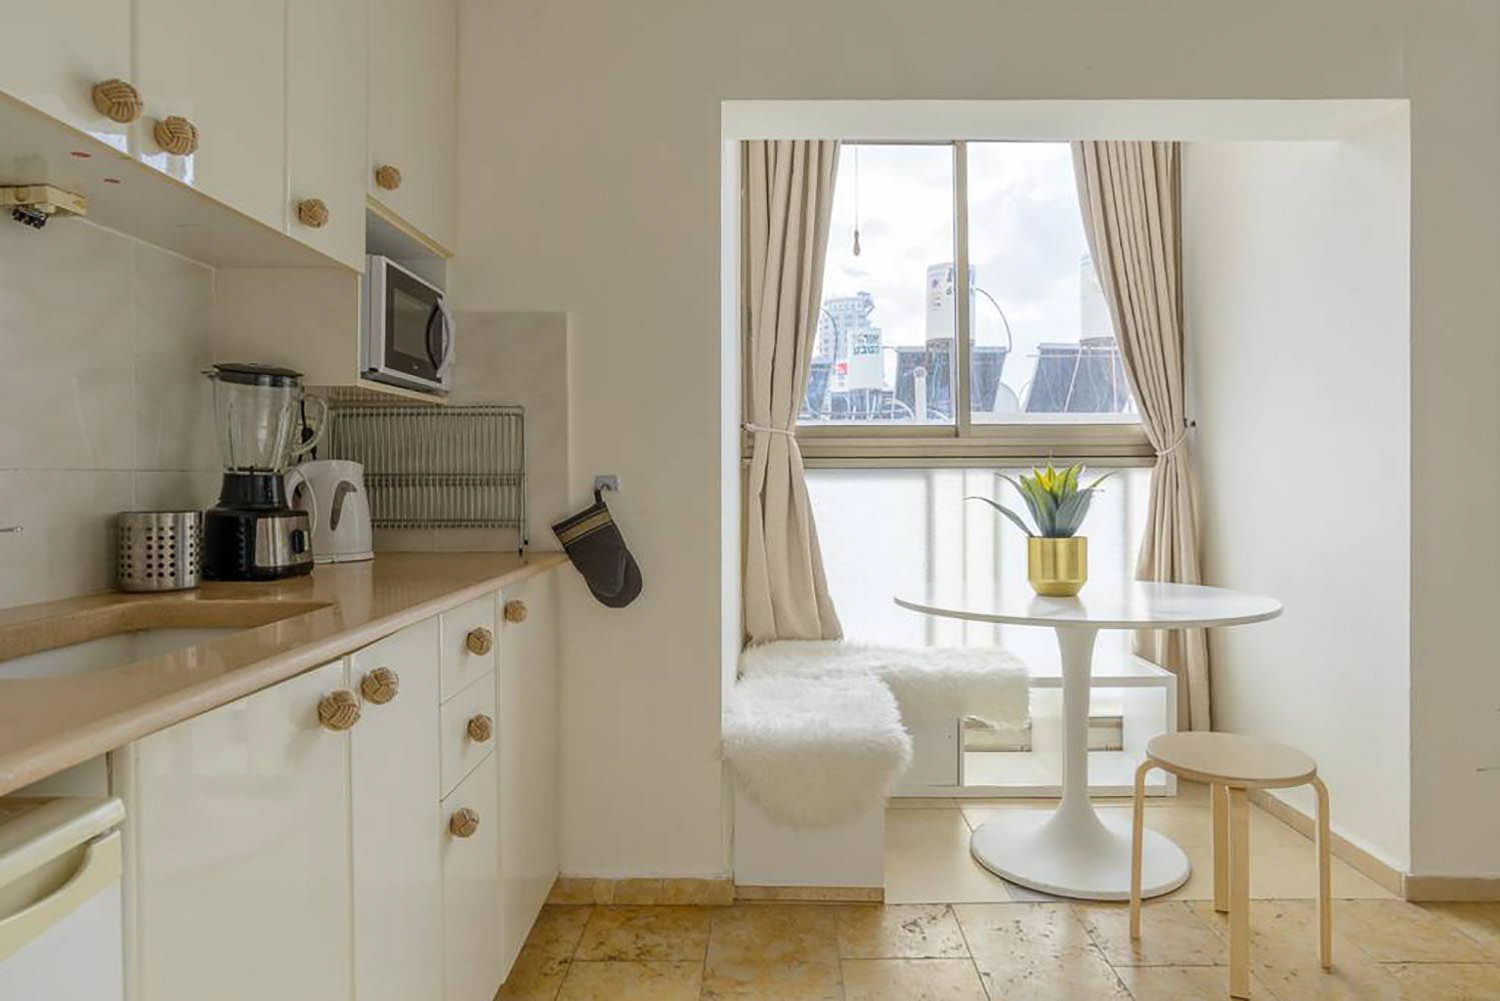 White and beige kitchen with dining nook made out of Ikea shelves. There are a white round table and a plant on top of it.